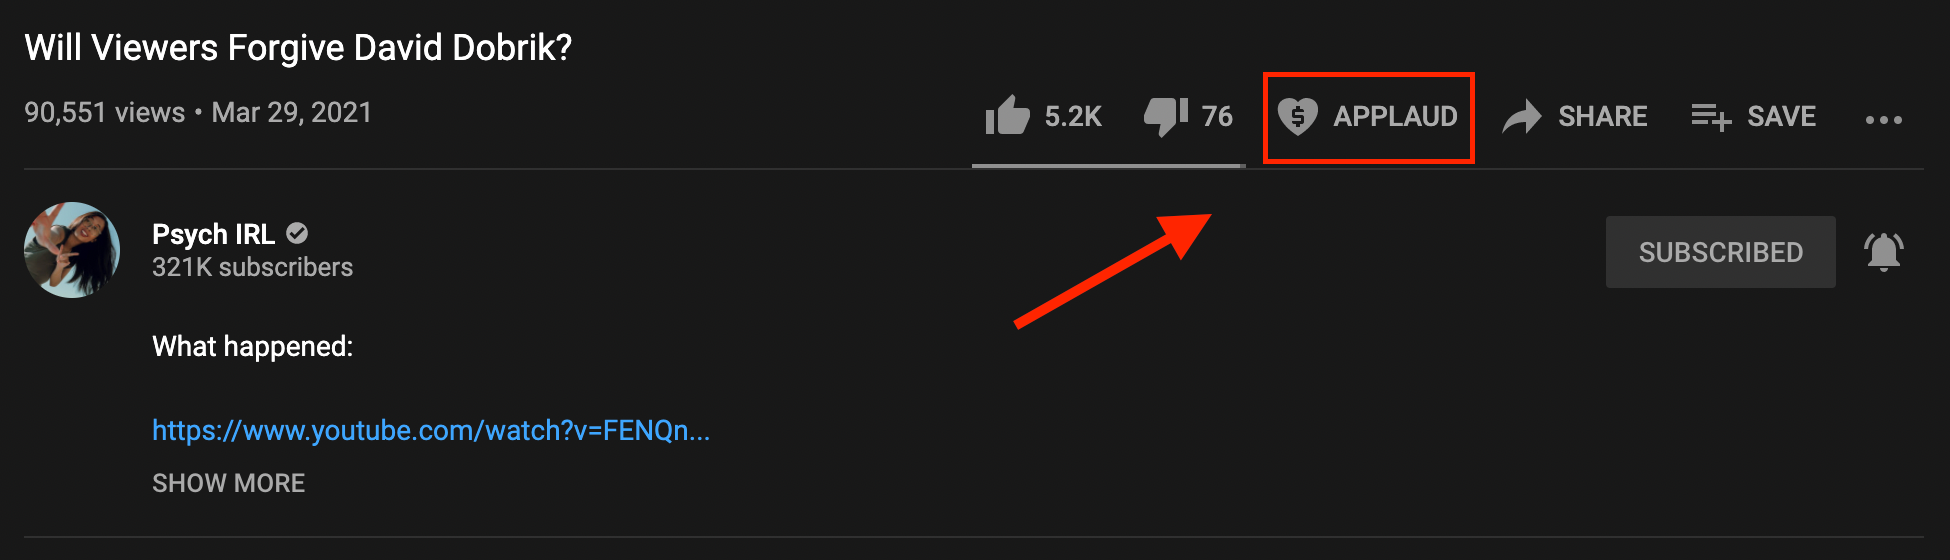 youtube applause